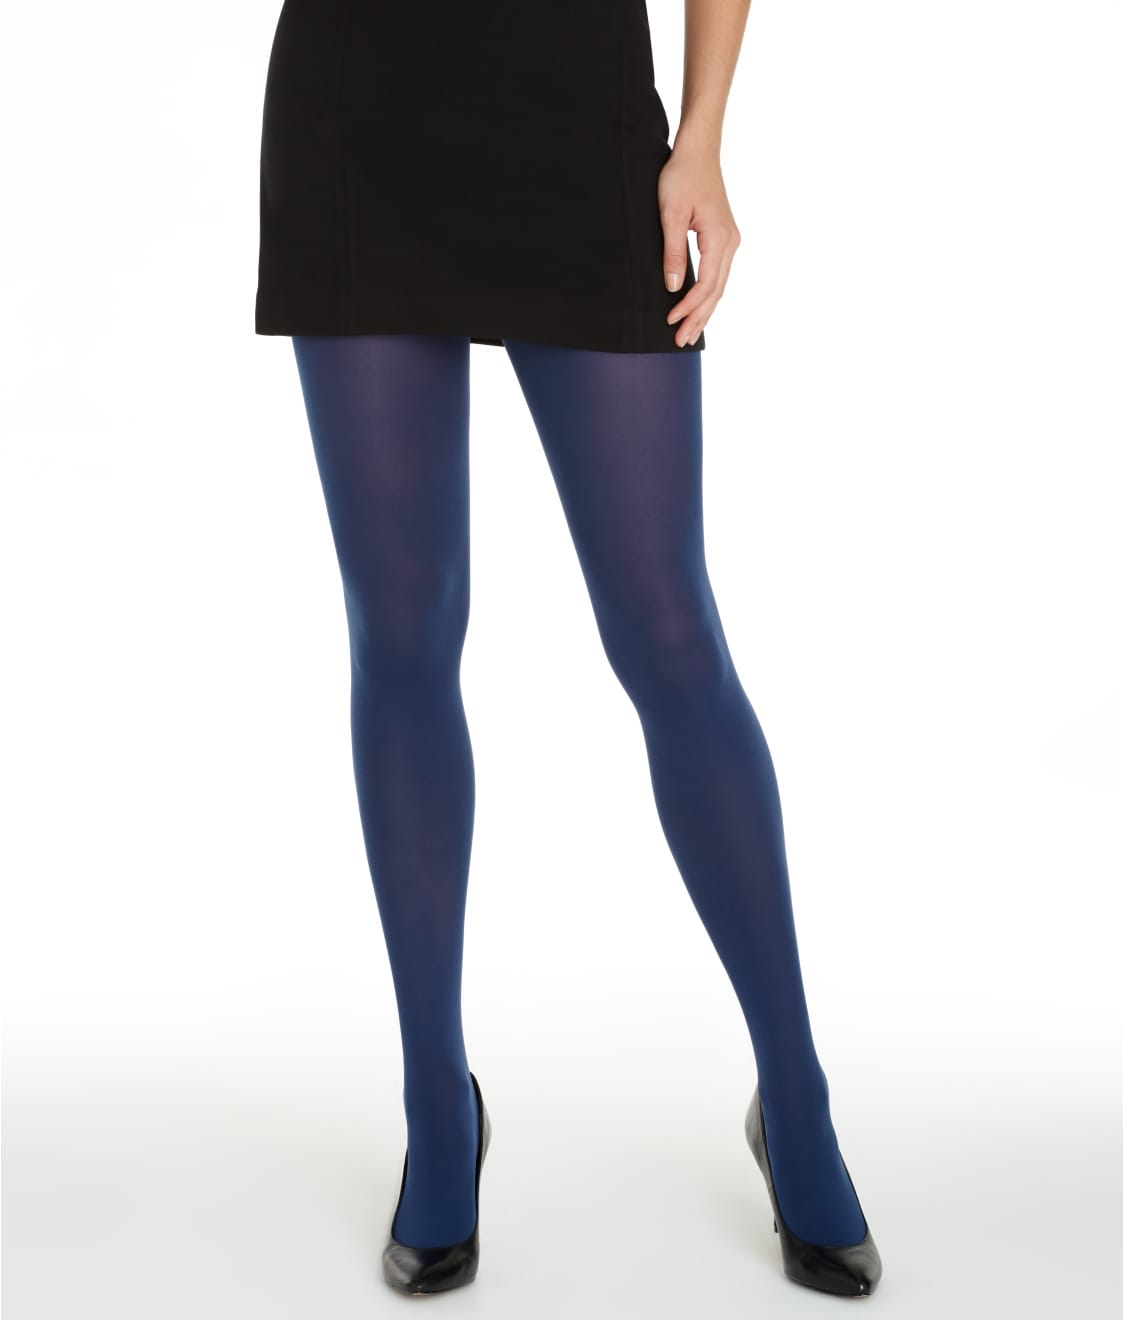 cdf08e8342797 HUE Super Opaque Control Top Tights | Bare Necessities (6620)